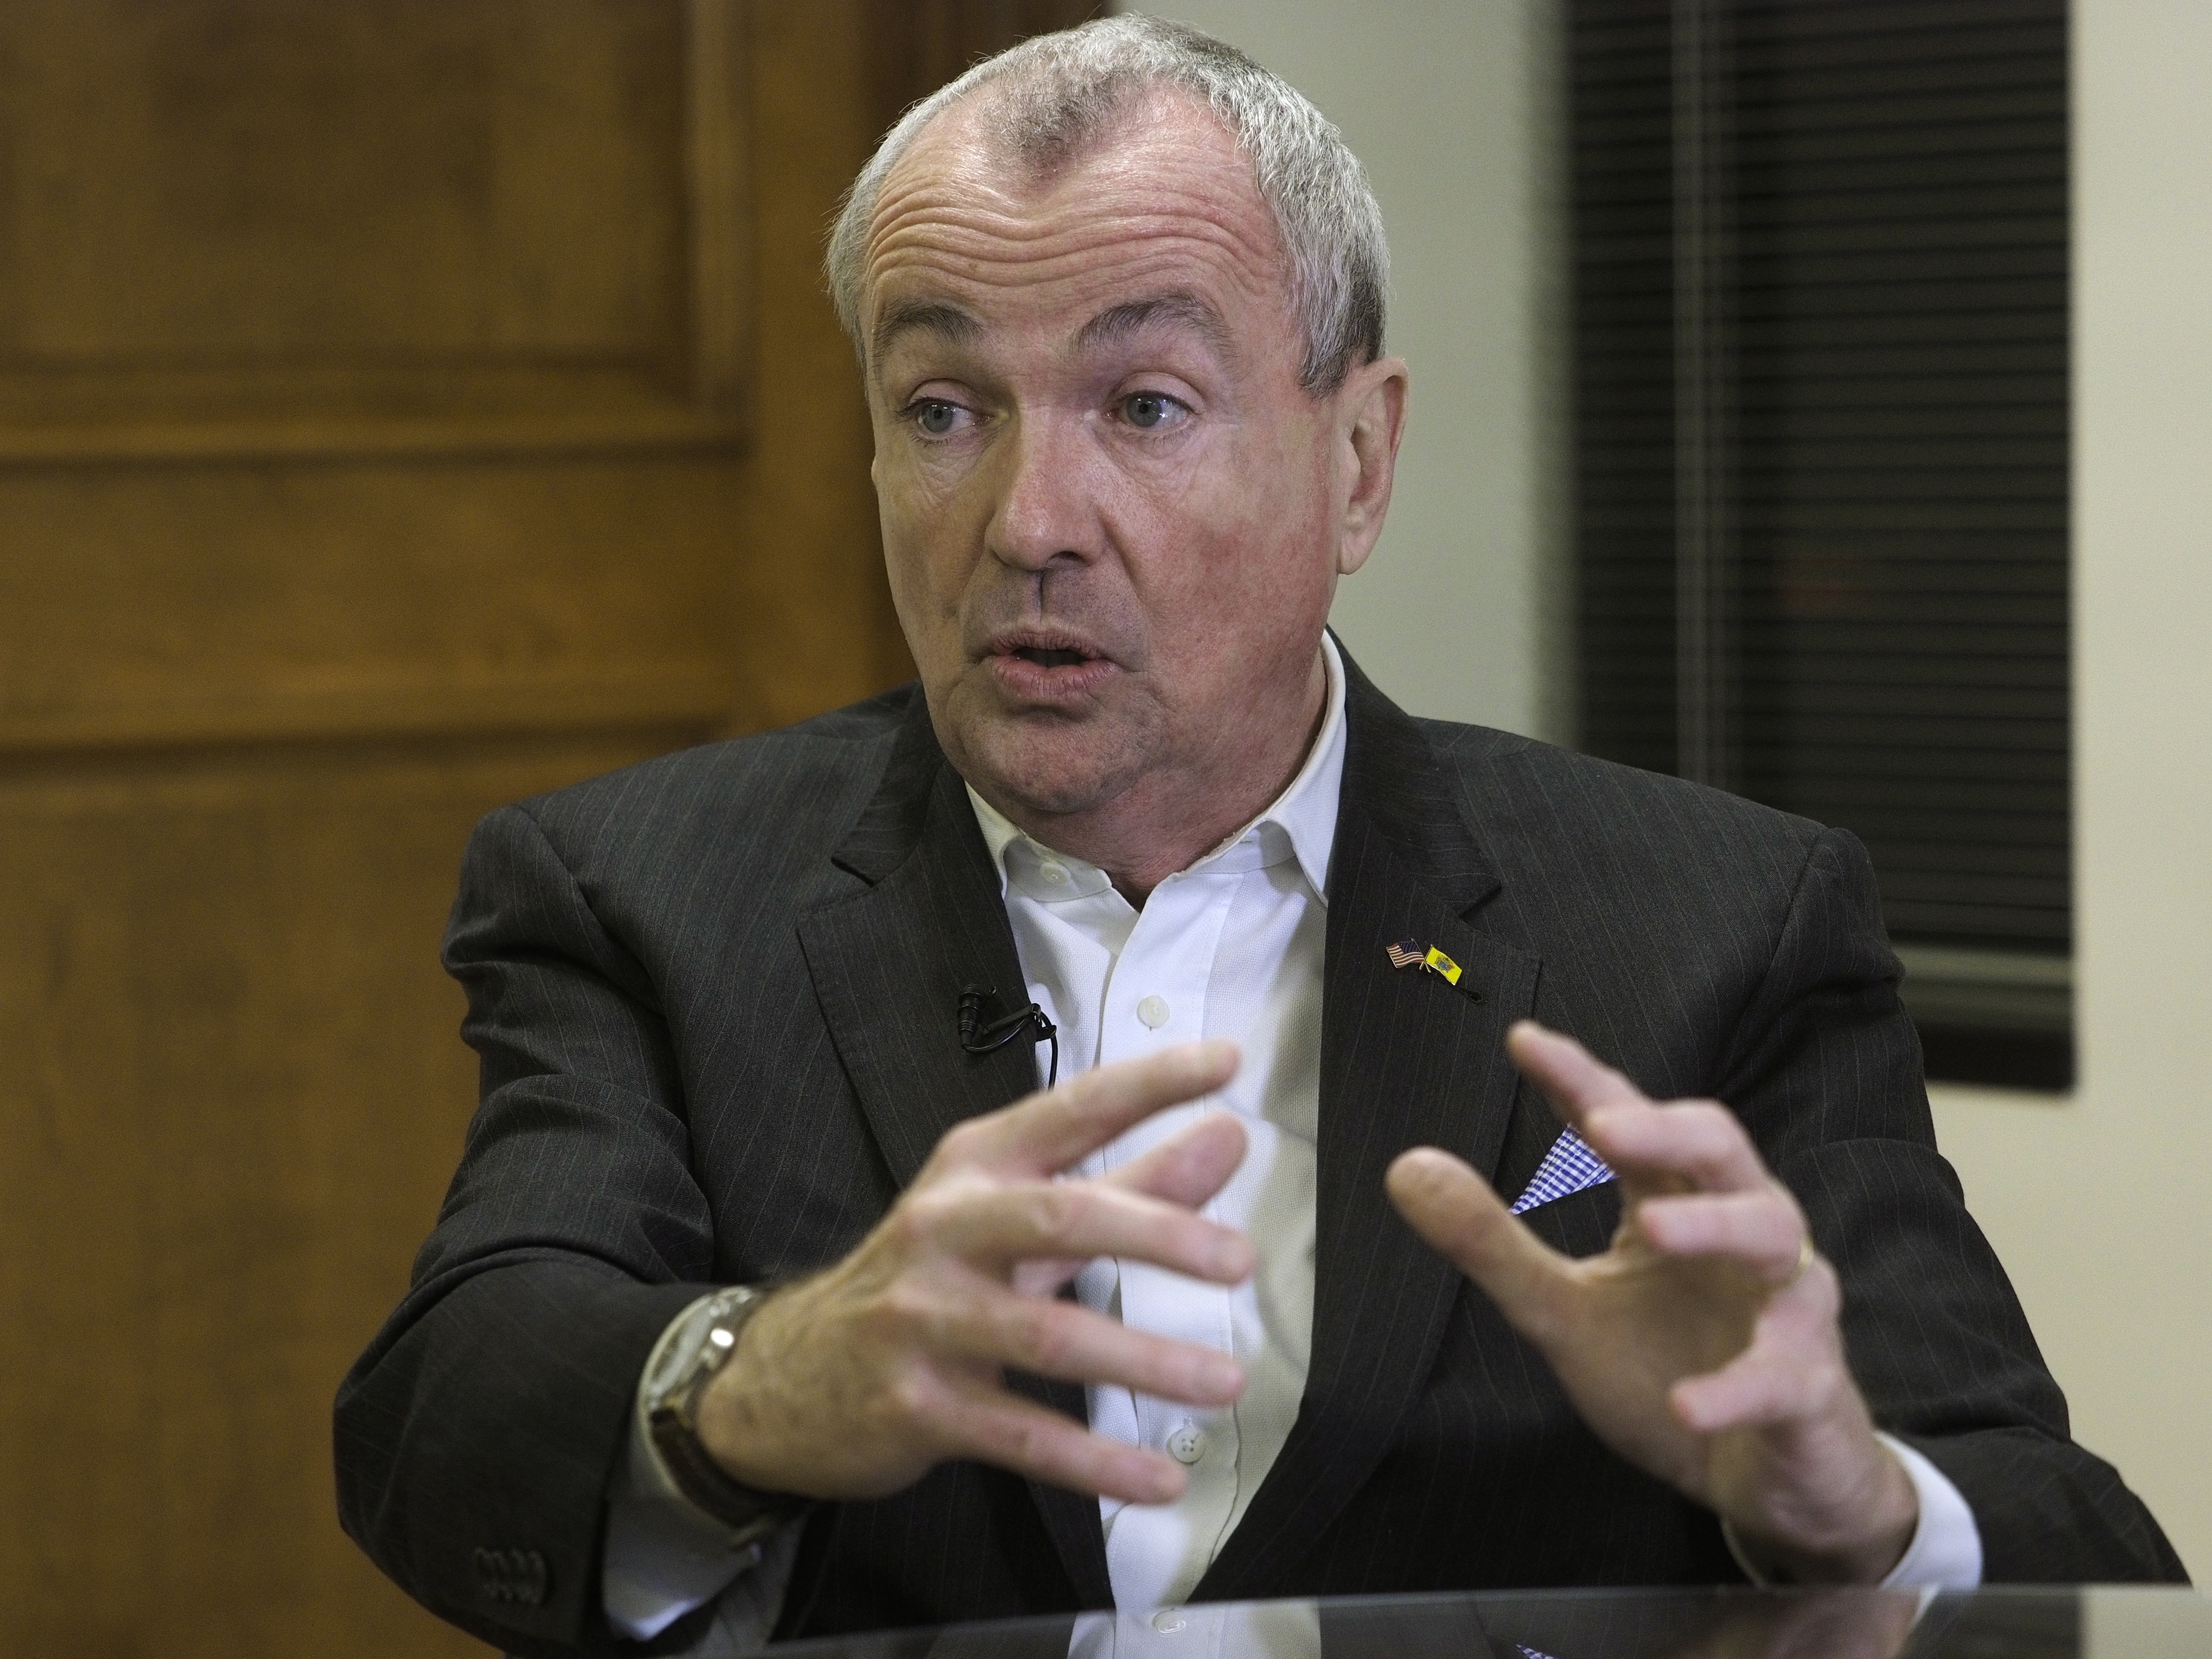 National gun control 'desperately needed' in wake of Jersey City shooting, Murphy says